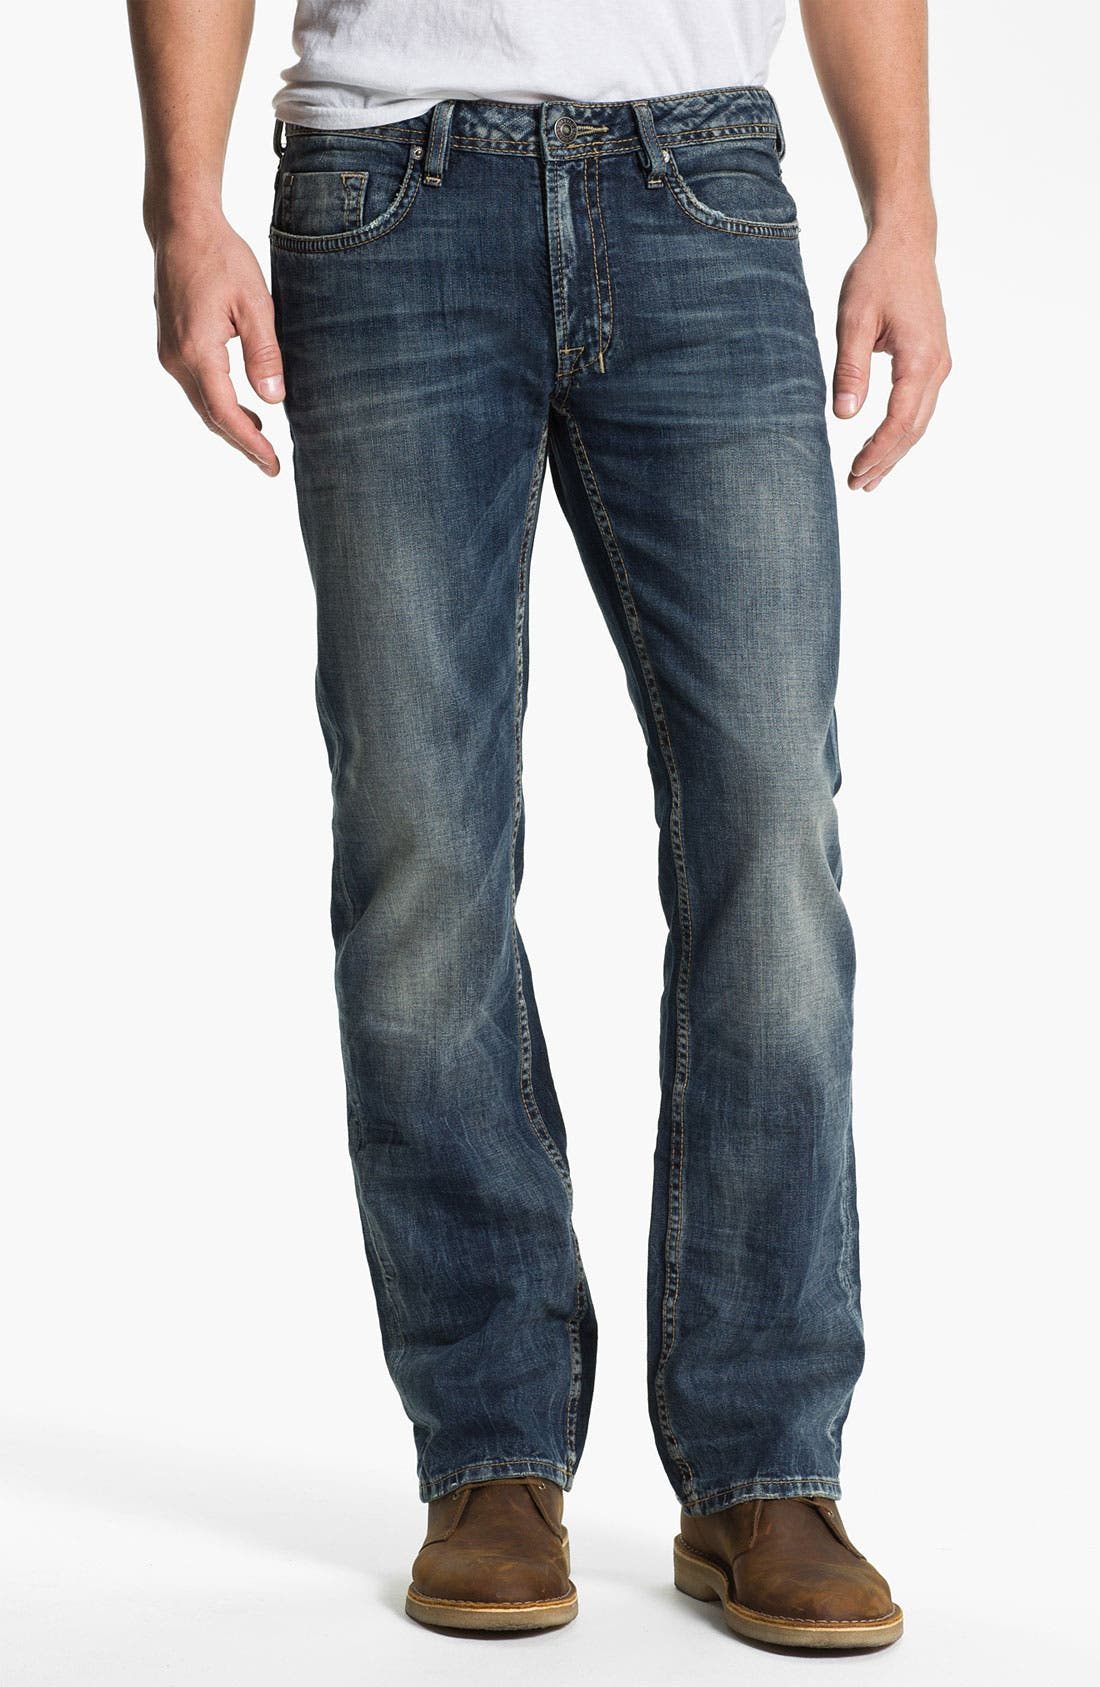 Alternate Image 1 Selected - Buffalo Jeans 'Driven' Straight Leg Jeans (Vintage Worn)